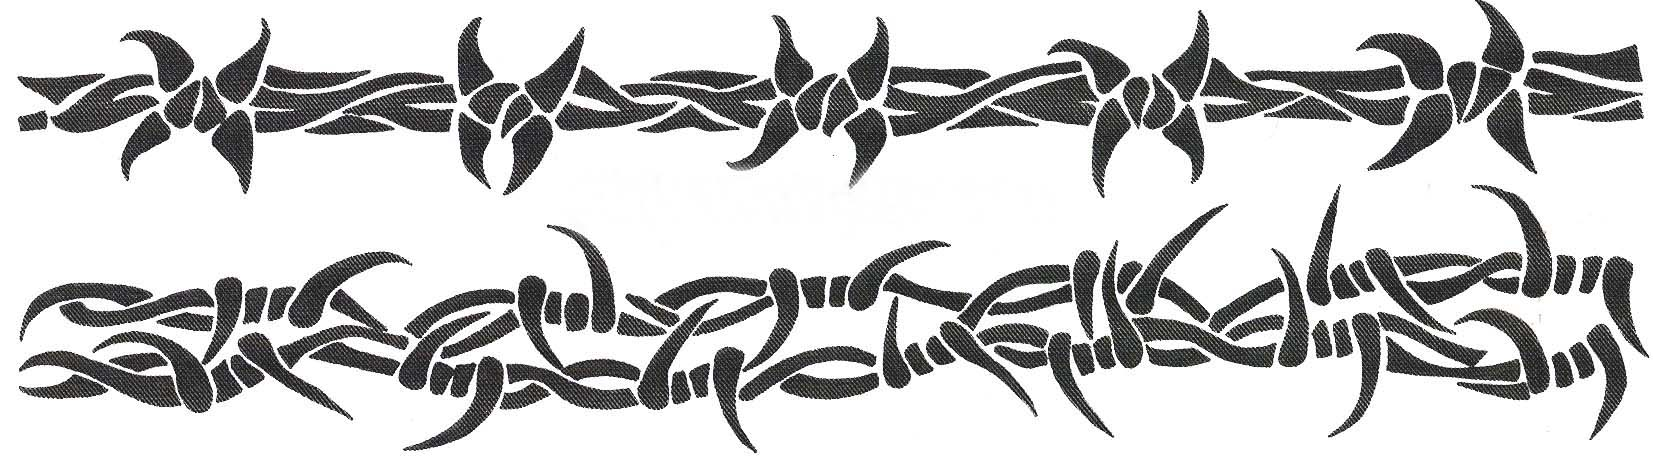 Barbed Wire Armband Tattoo Designs